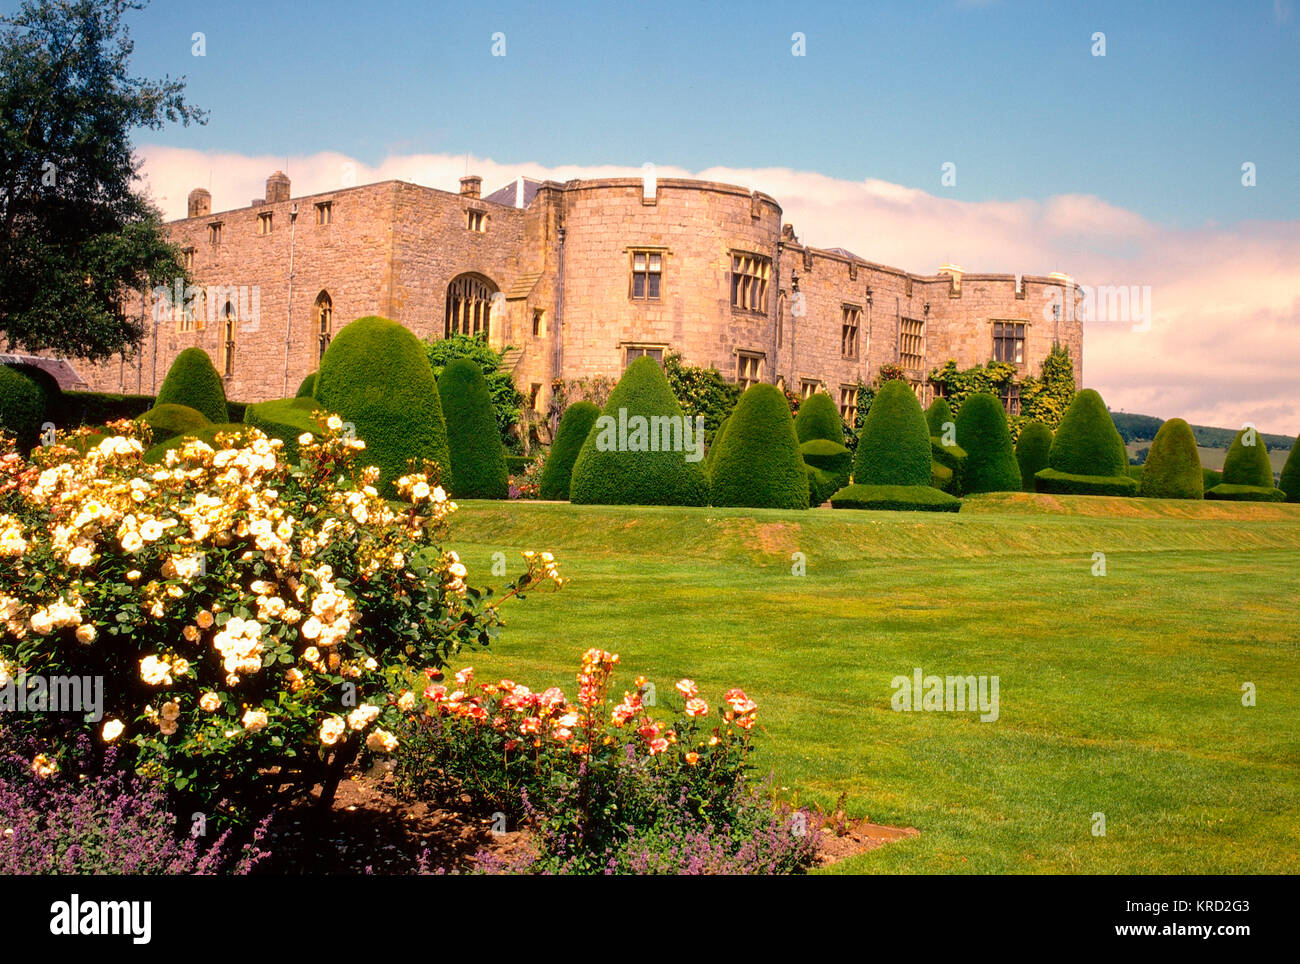 View of Chirk Castle, Wrexham, Clwyd, North Wales, with gardens in the foreground.       Date: 2008 - Stock Image